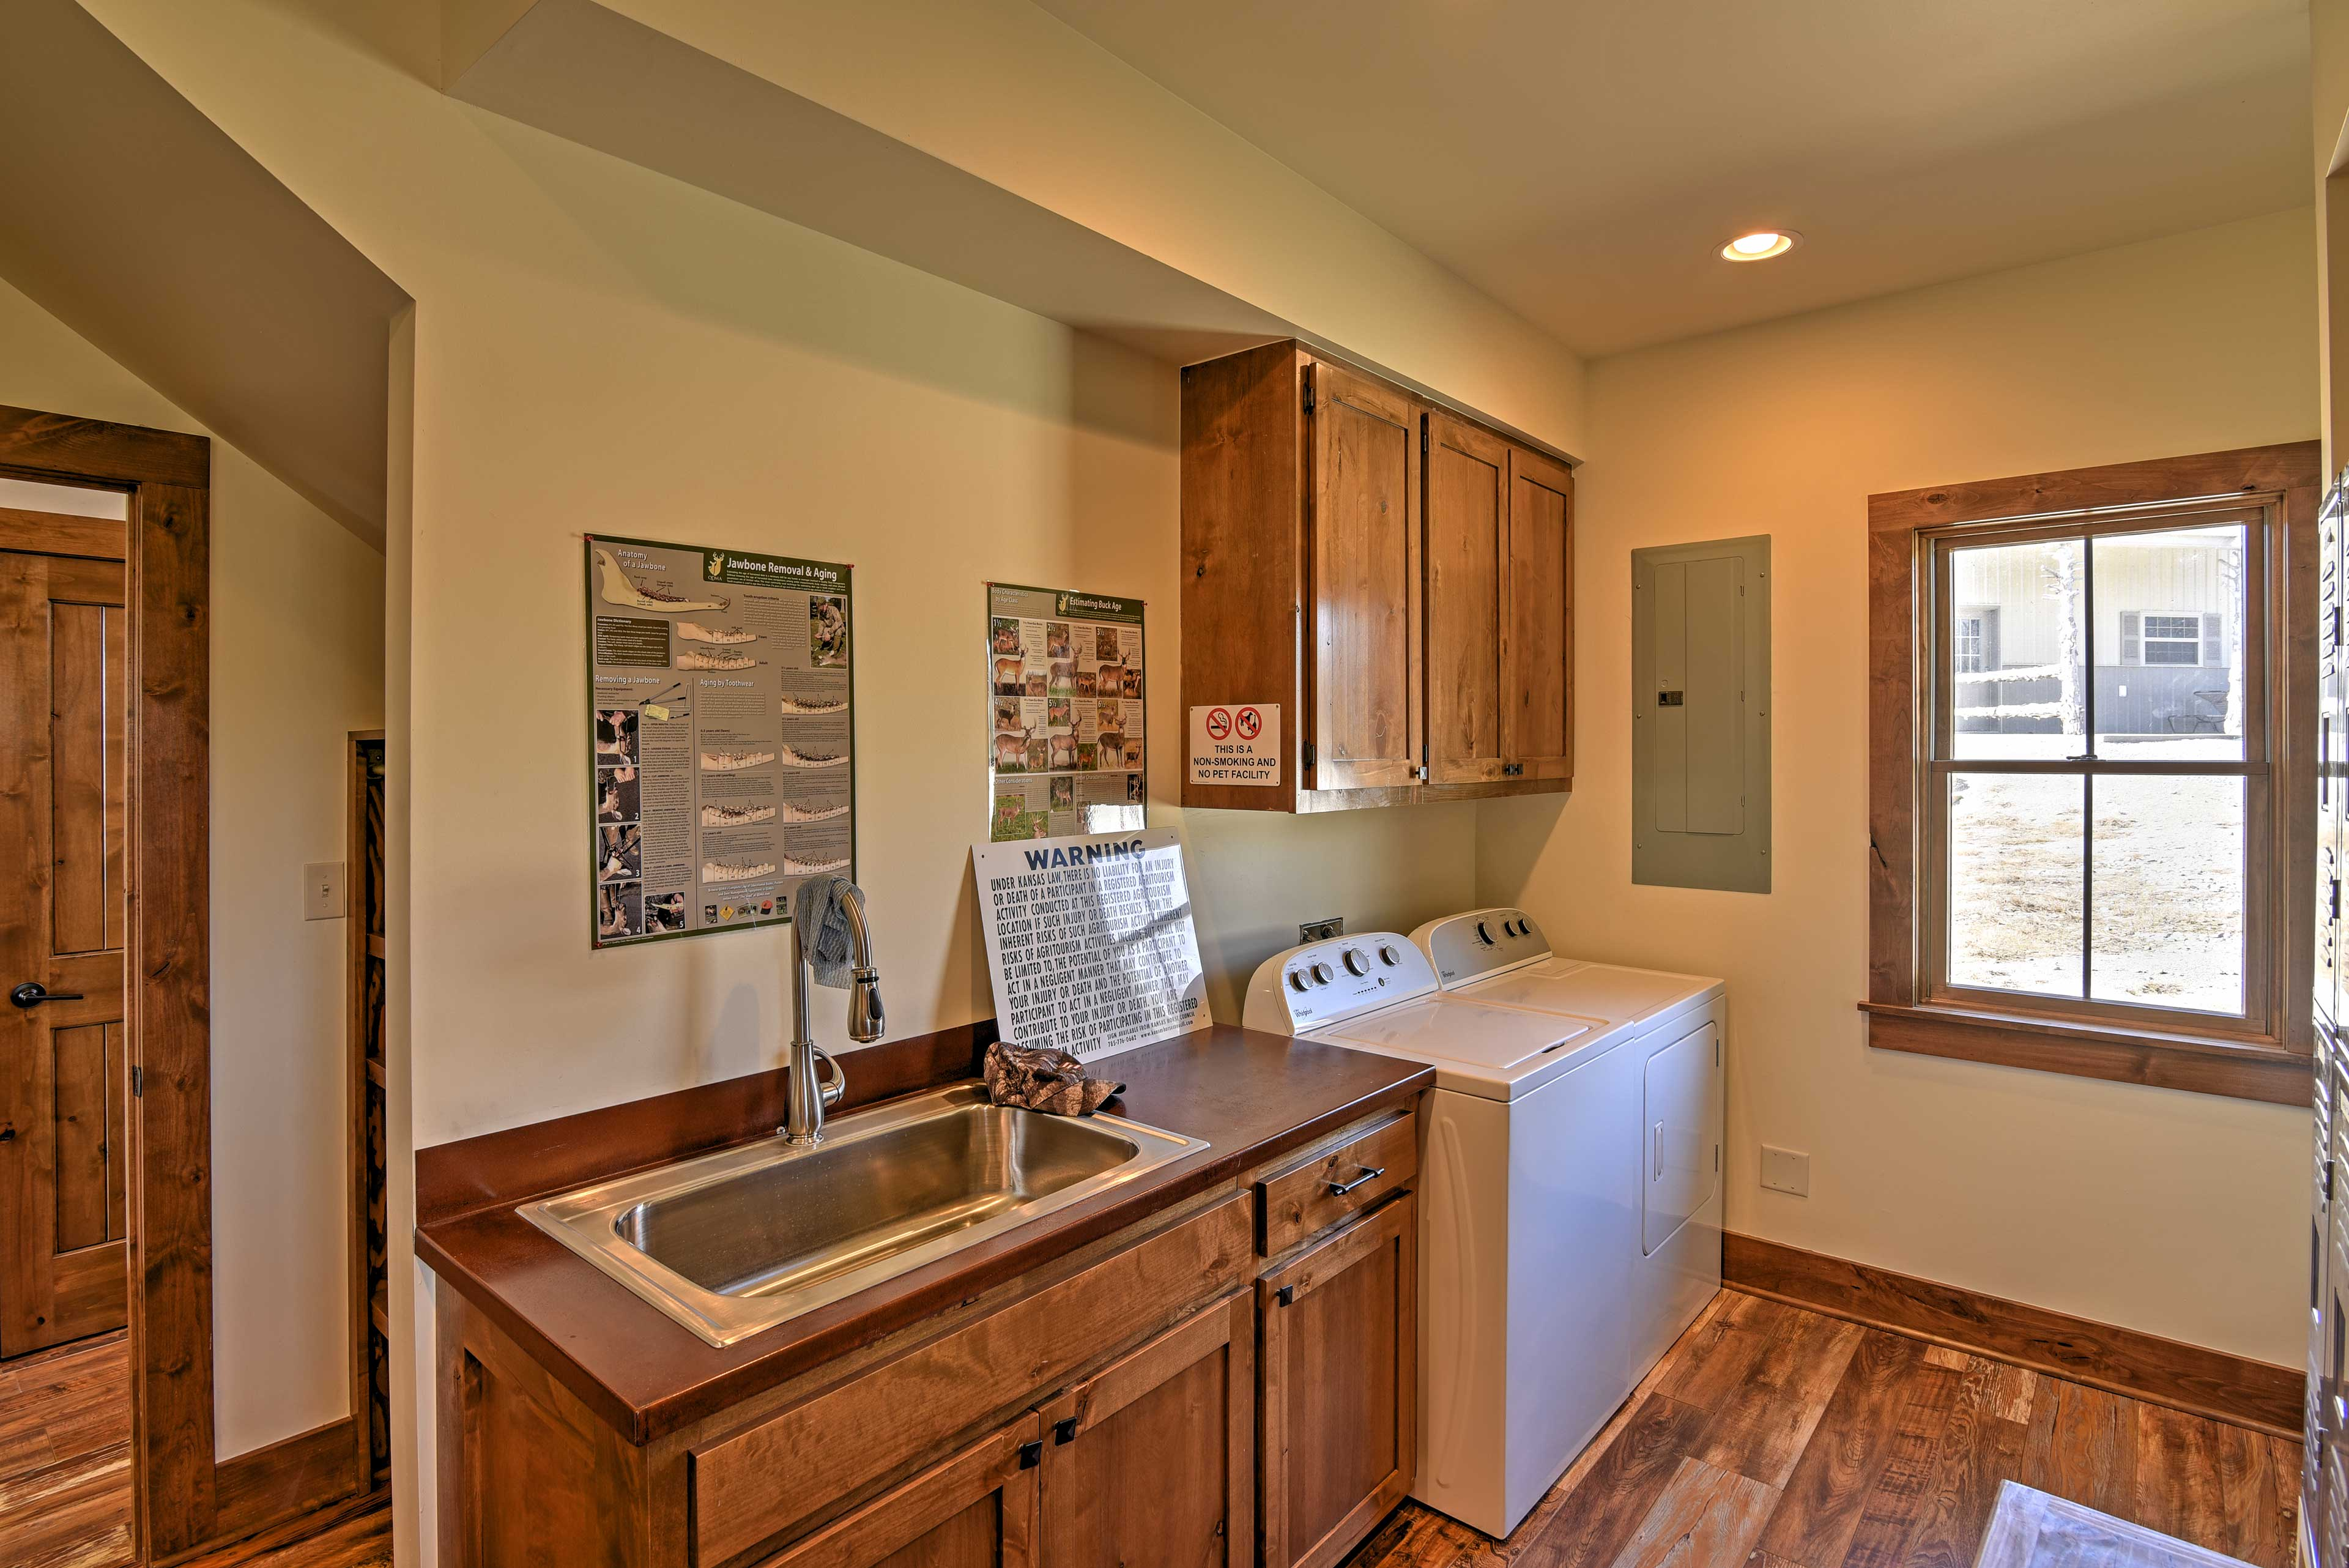 No need to pack your entire wardrobe. This home has an in-unit washer and dryer.